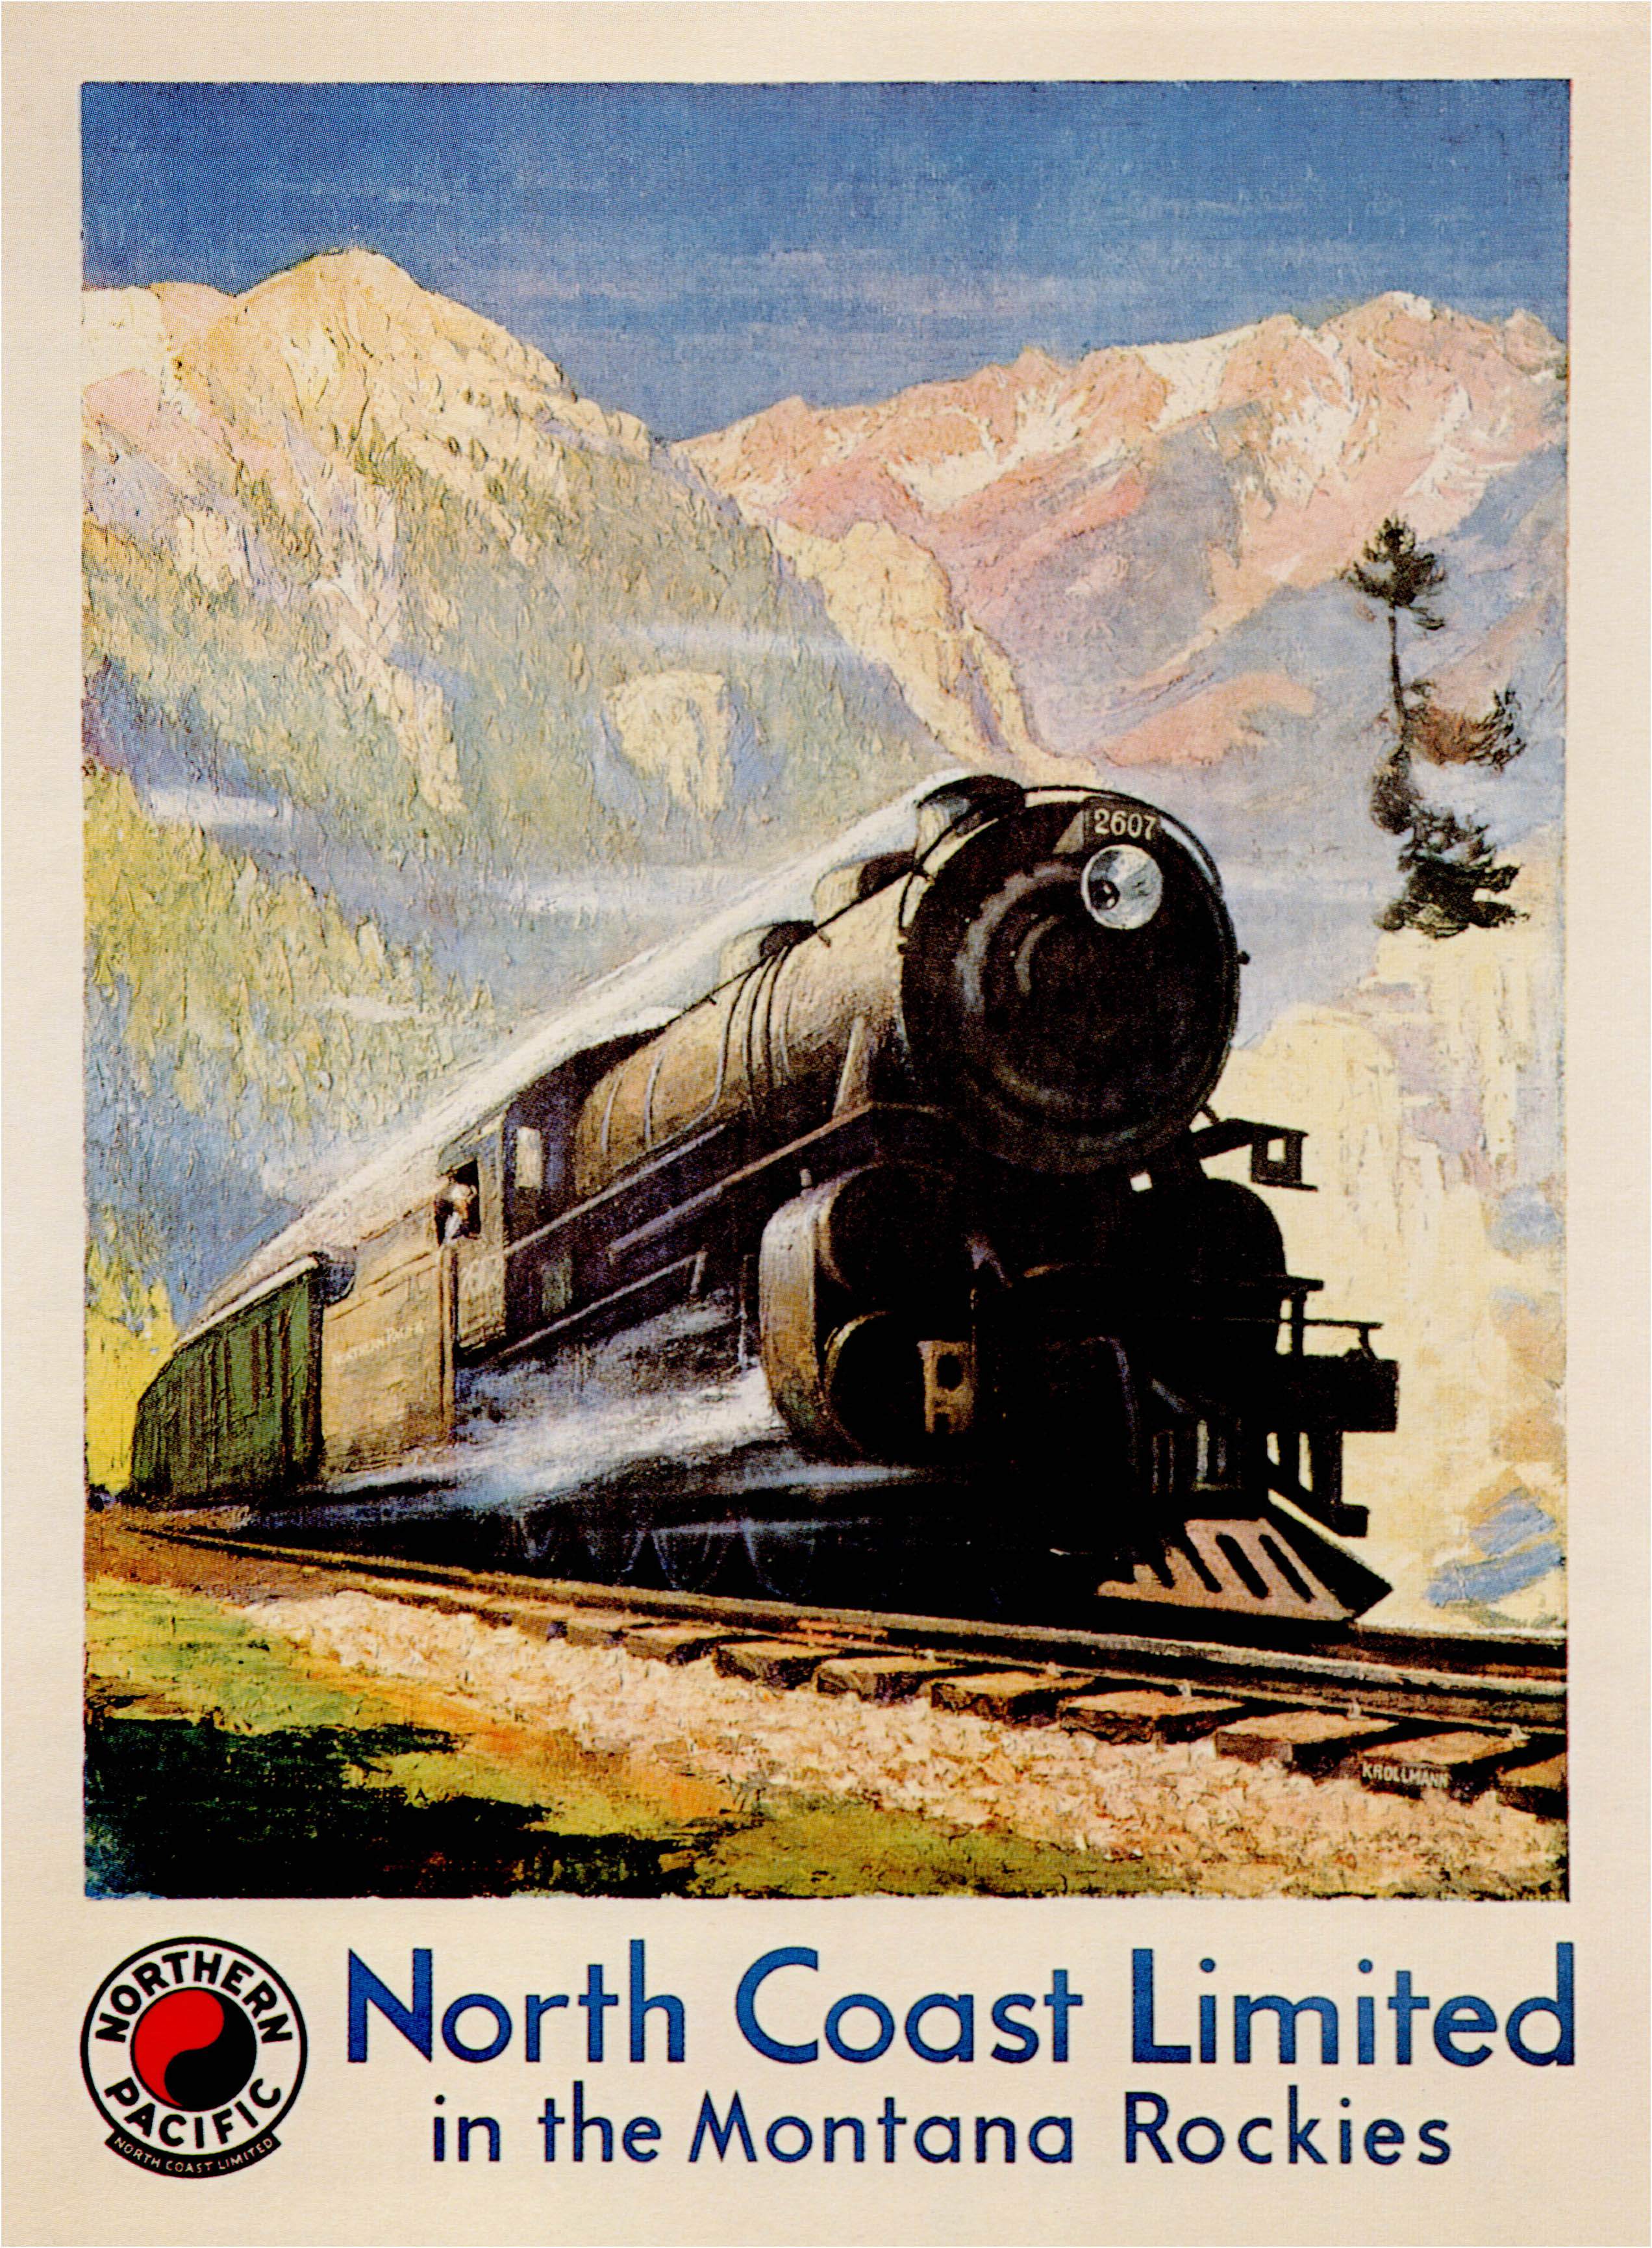 1000 images about Trains on Pinterest